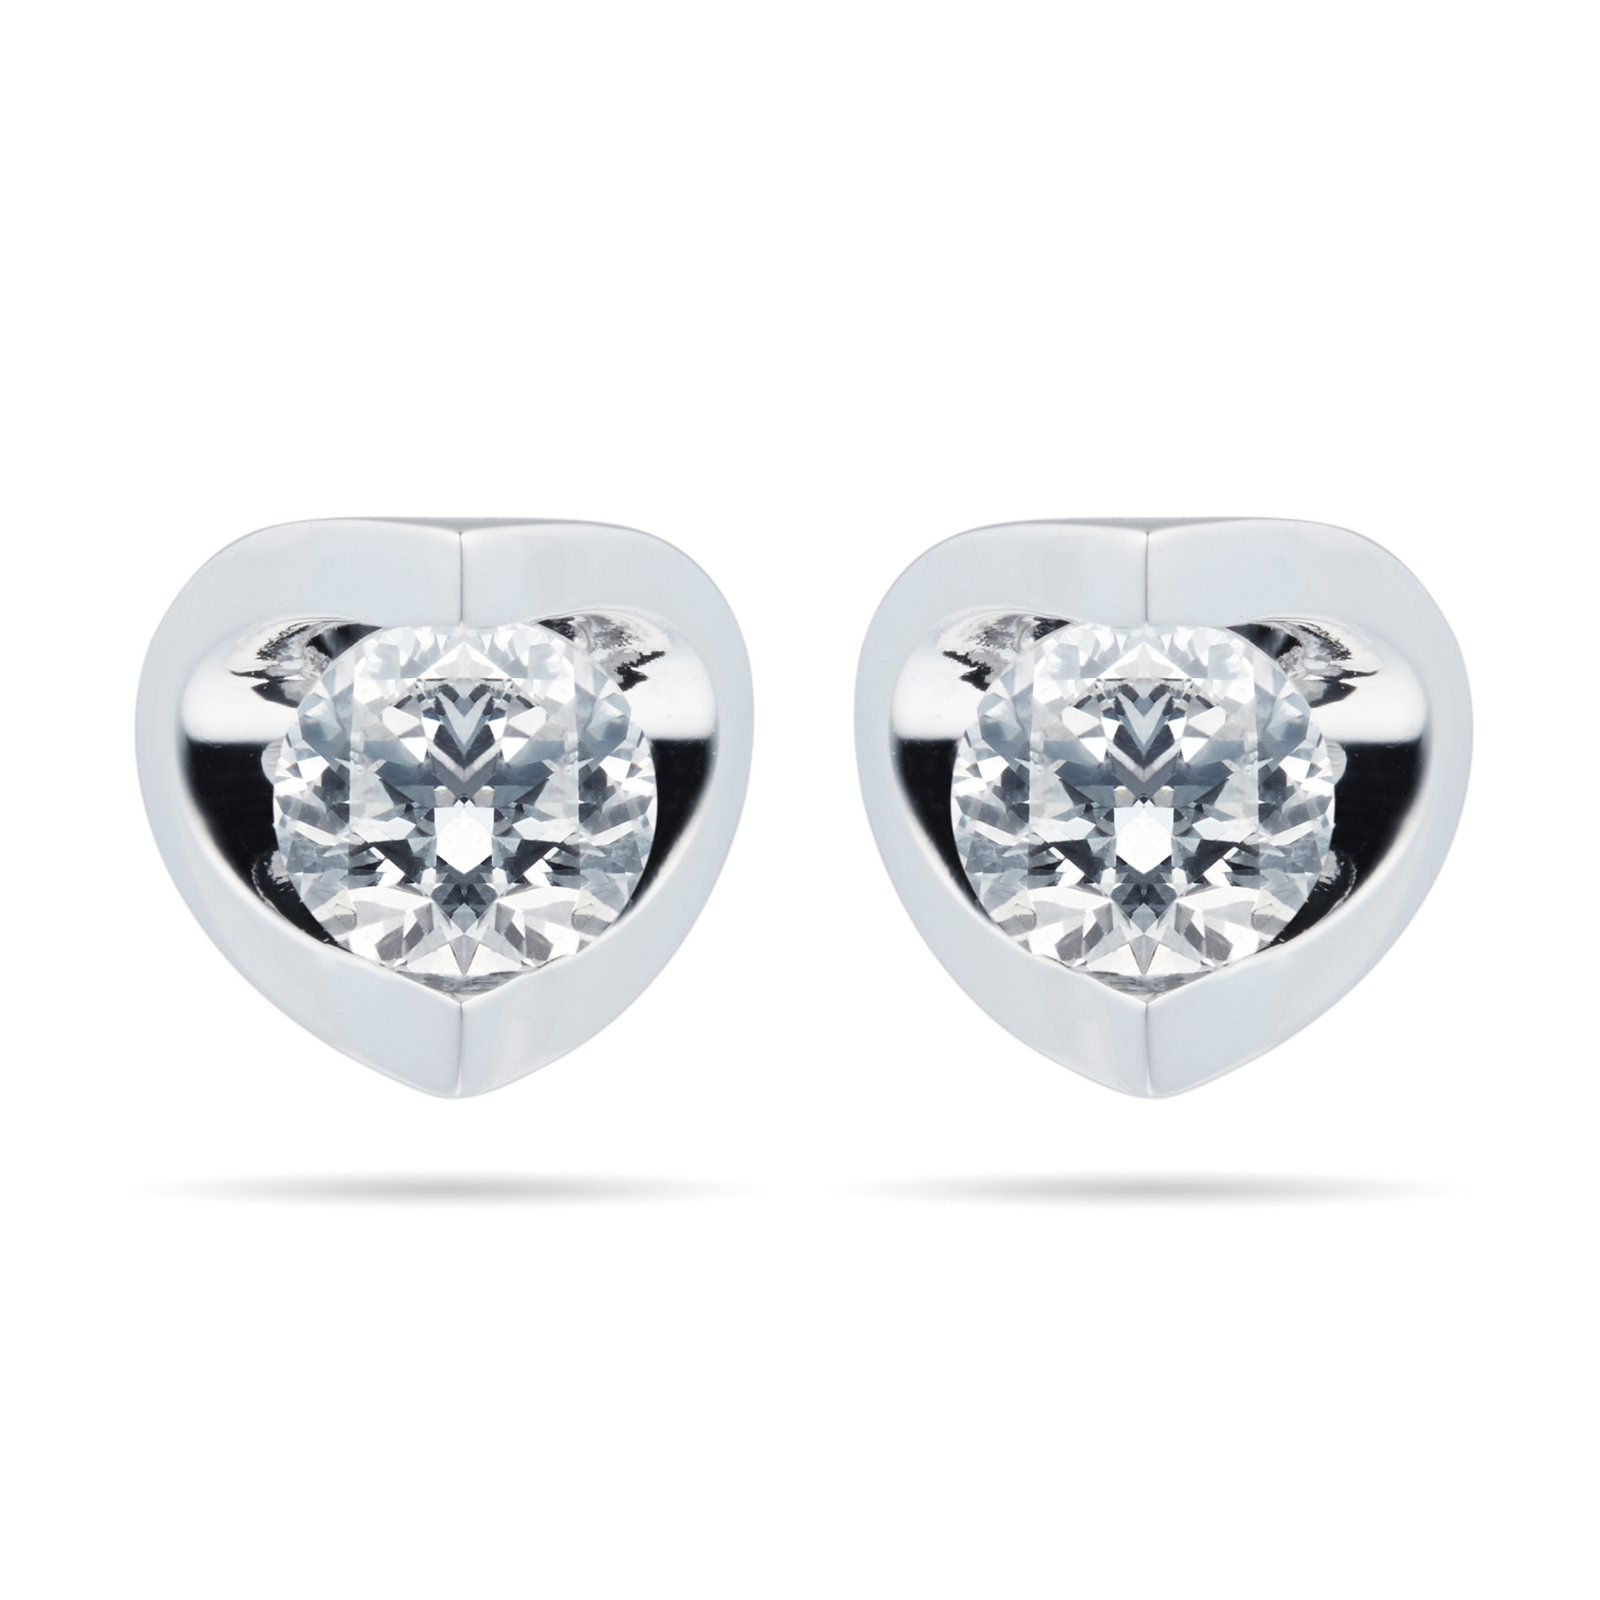 18ct White Gold 0.40ct Tension Set 88 Facet Diamond Earrings